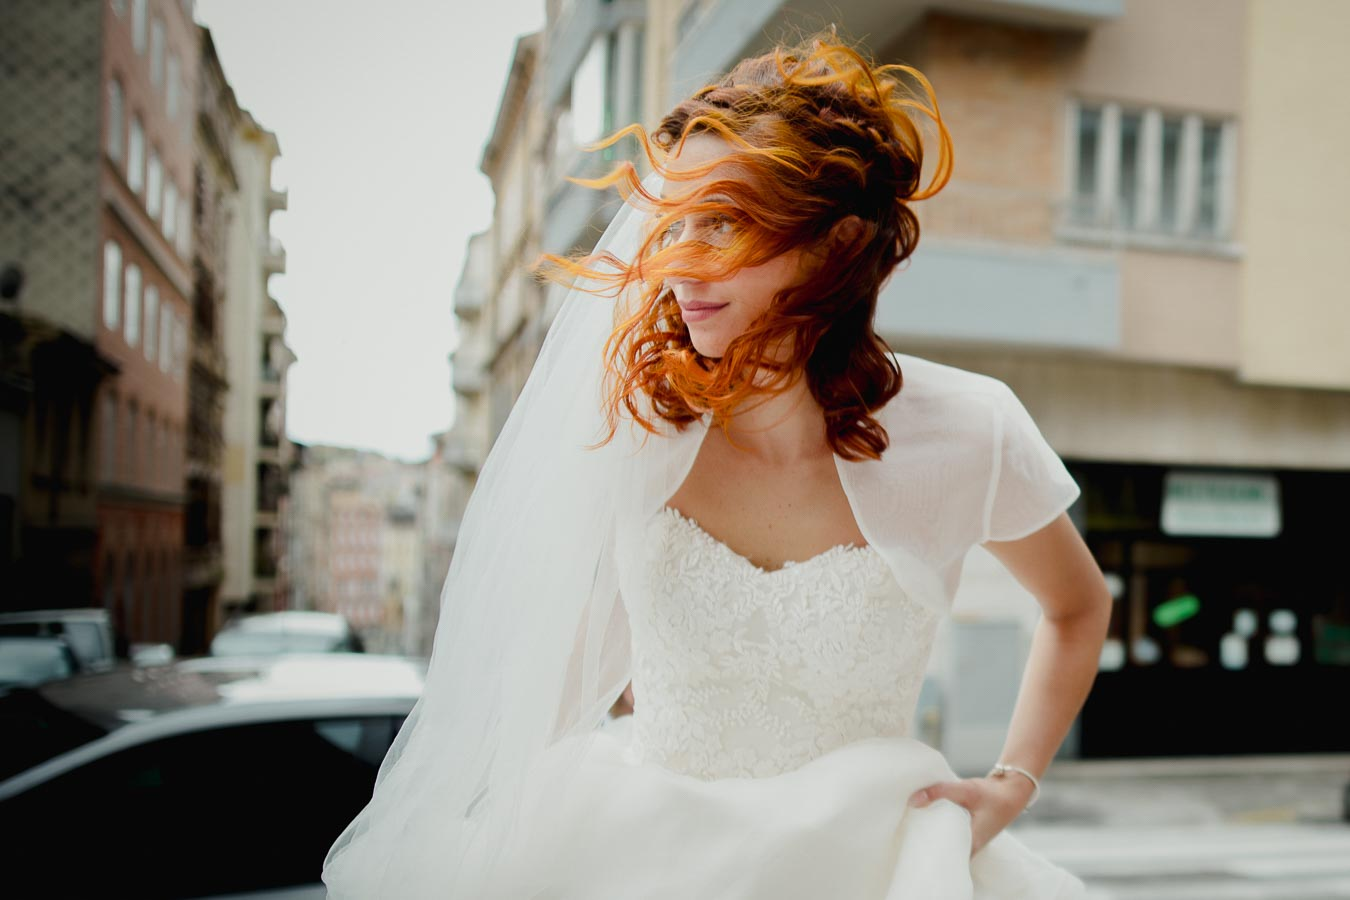 wedding photographer Luca Savino Trieste Italy